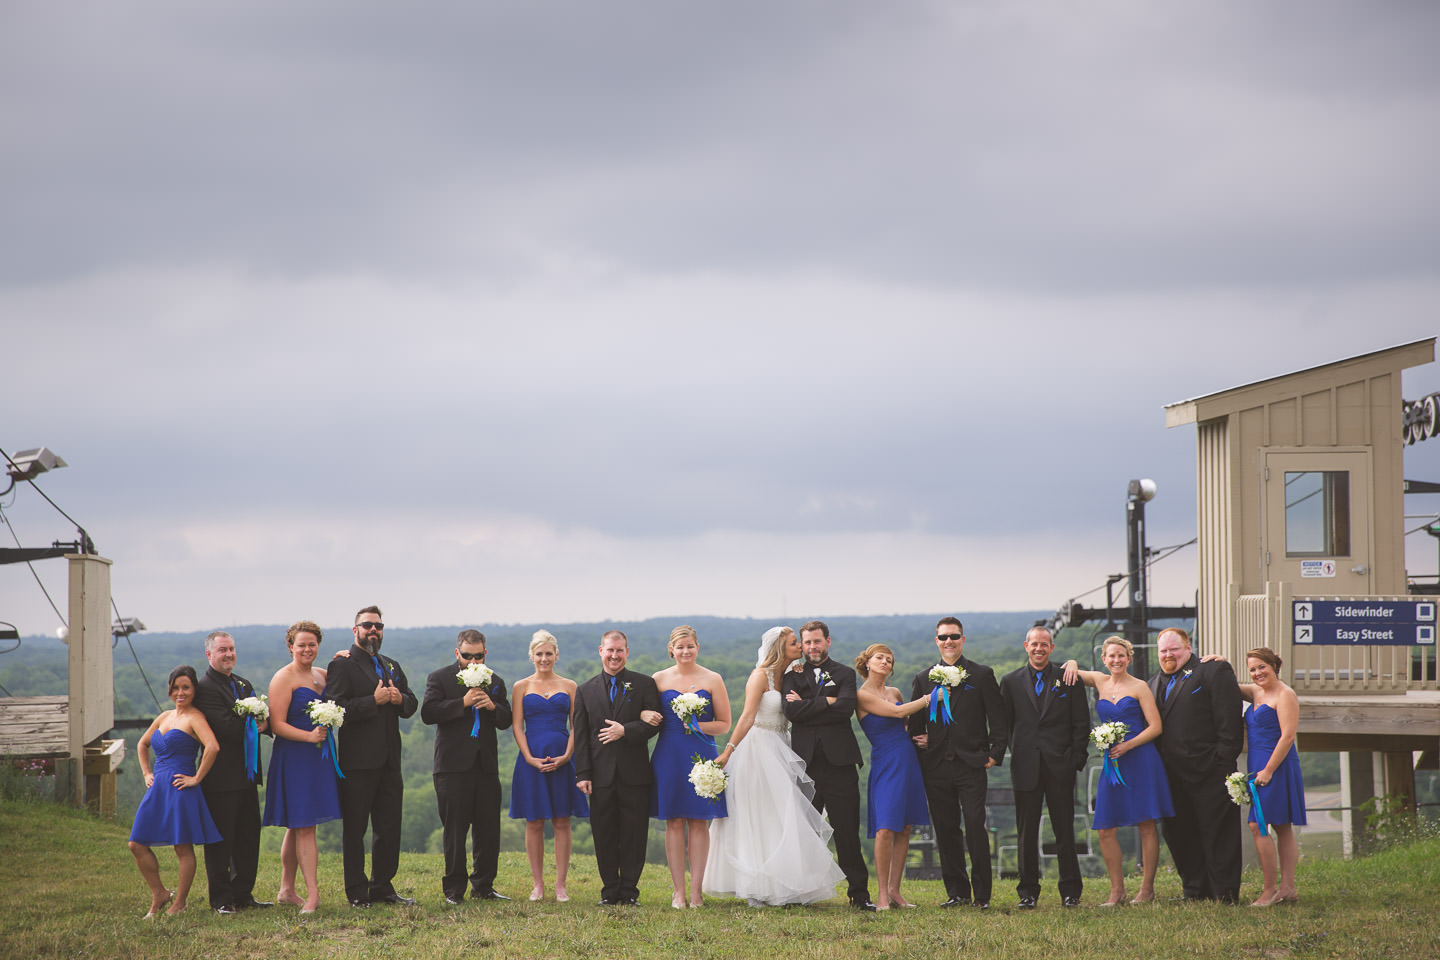 Mt-Brighton-Michigan-Wedding-Bridal-Party-Group-Photo